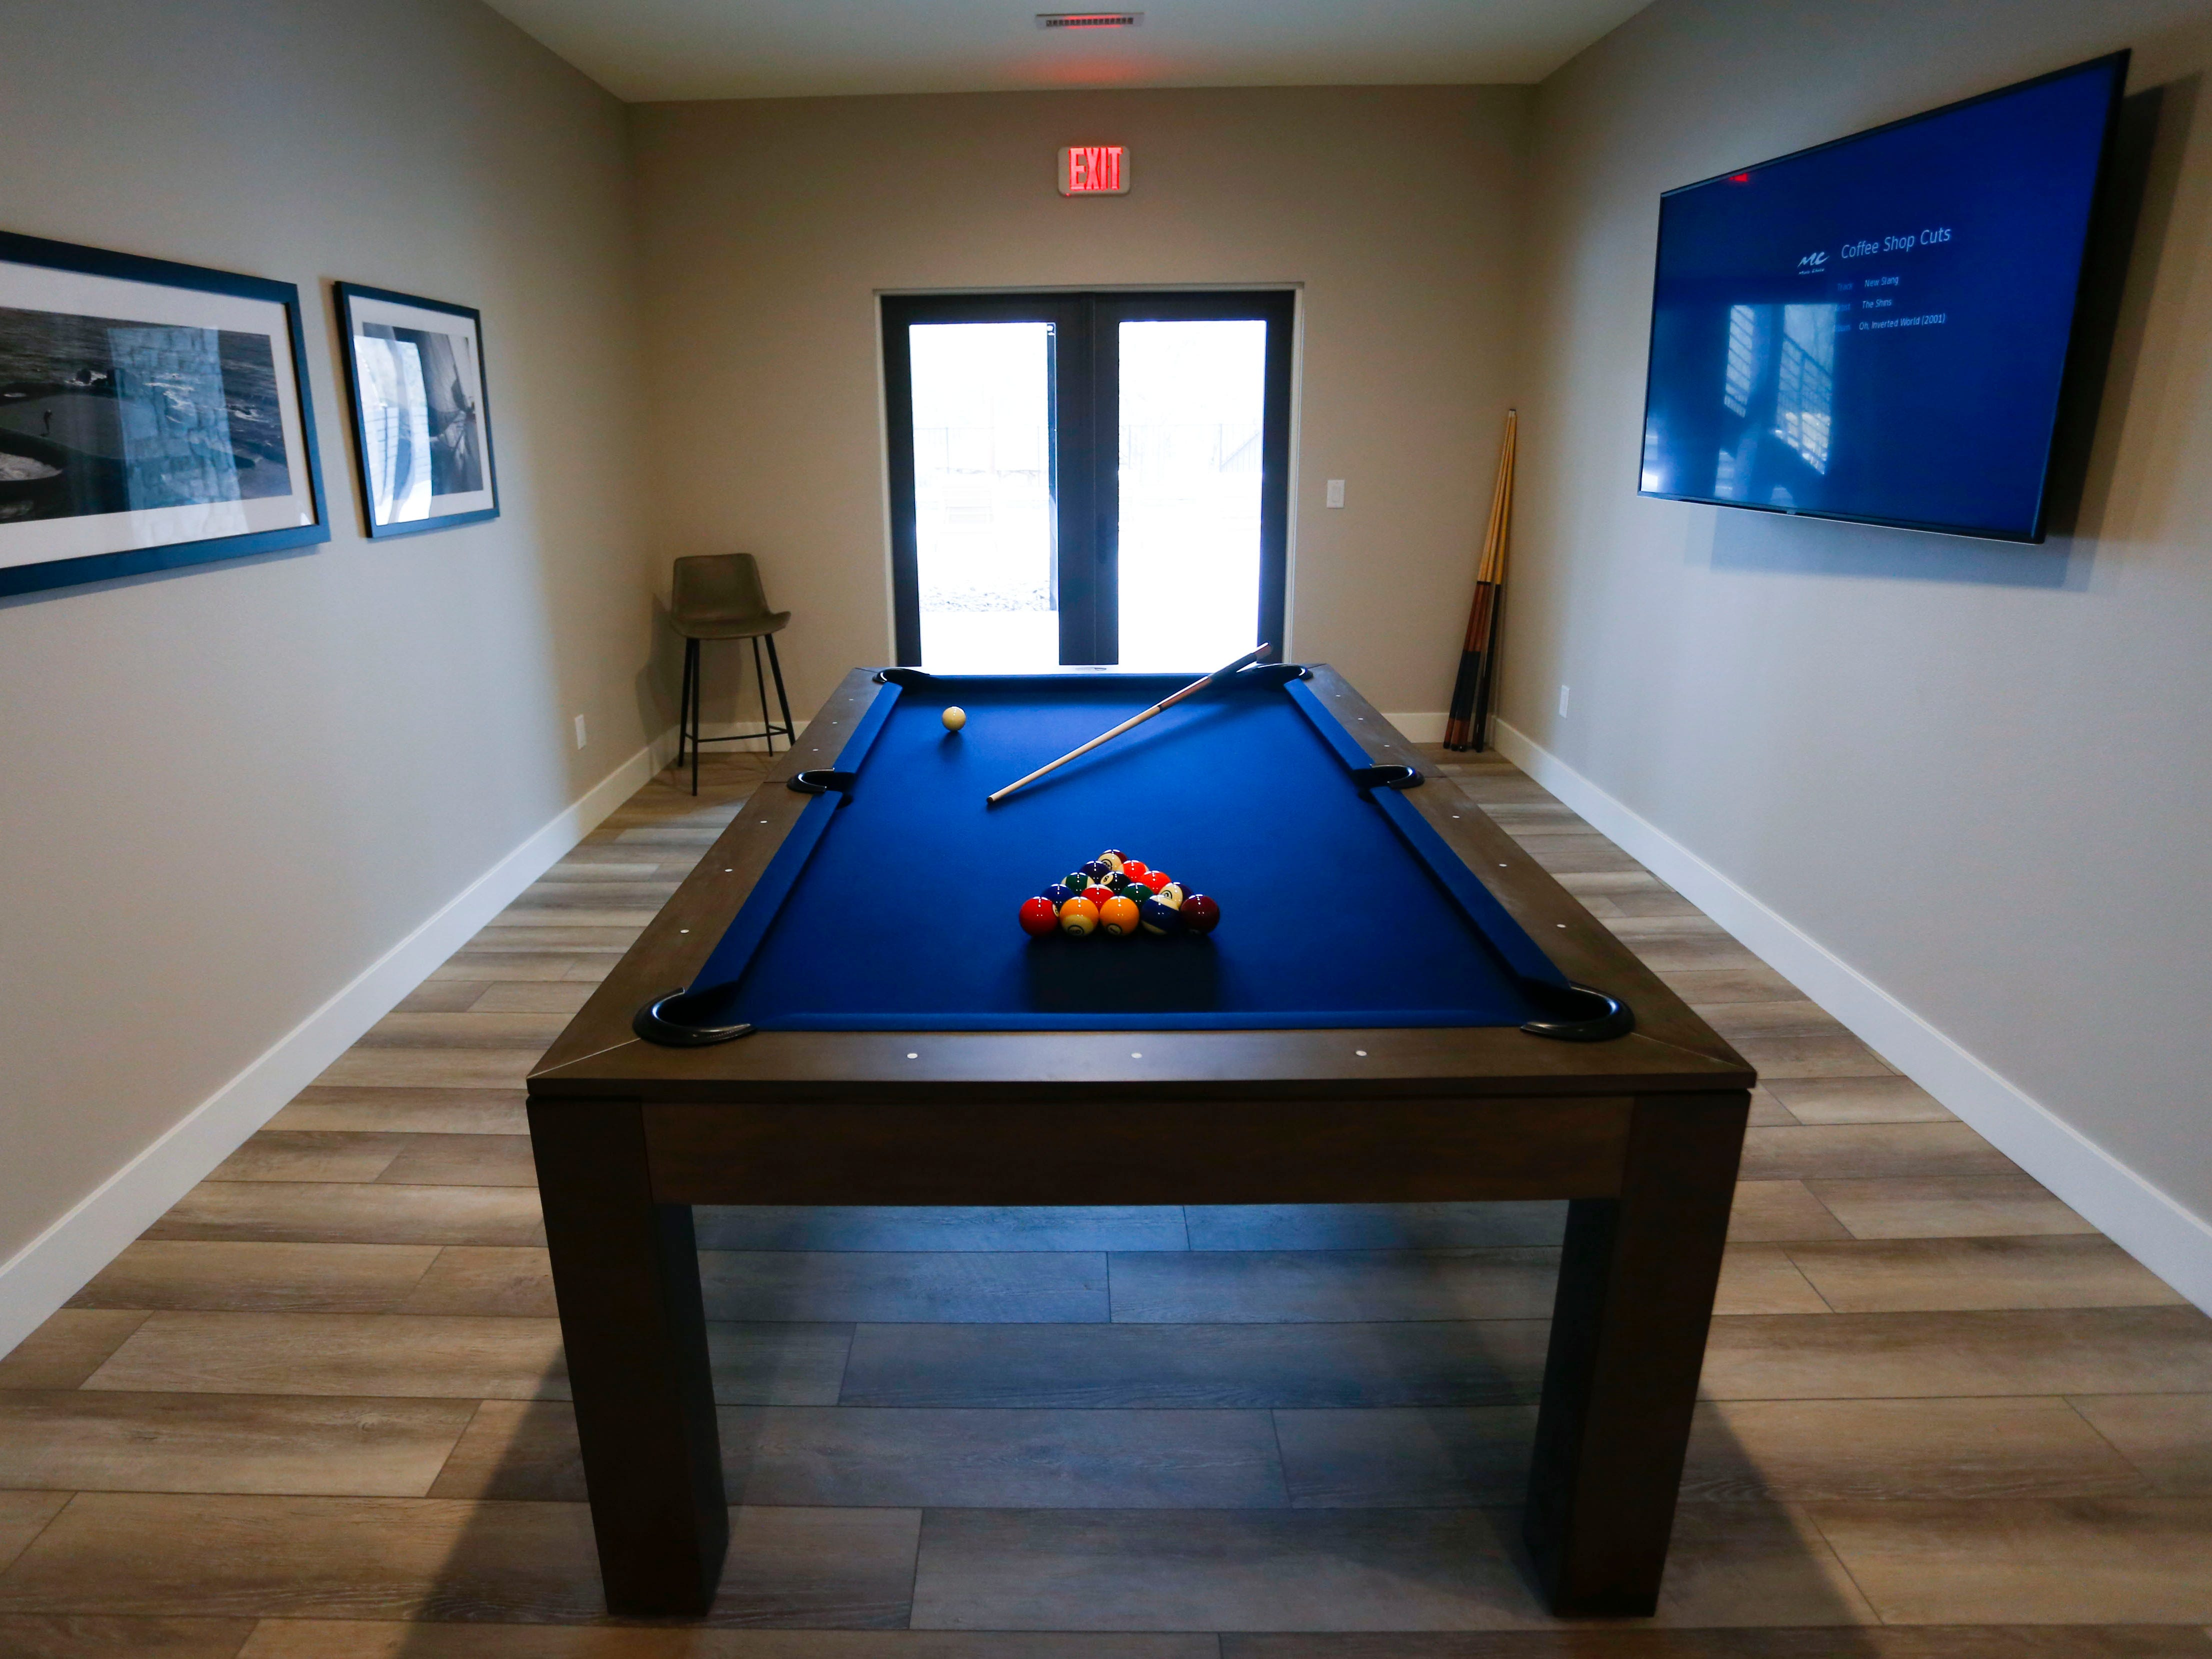 Inside Synergy Executive, an upscale, privately owned drug and alcohol rehab center for men that will open in Ozark in early March.